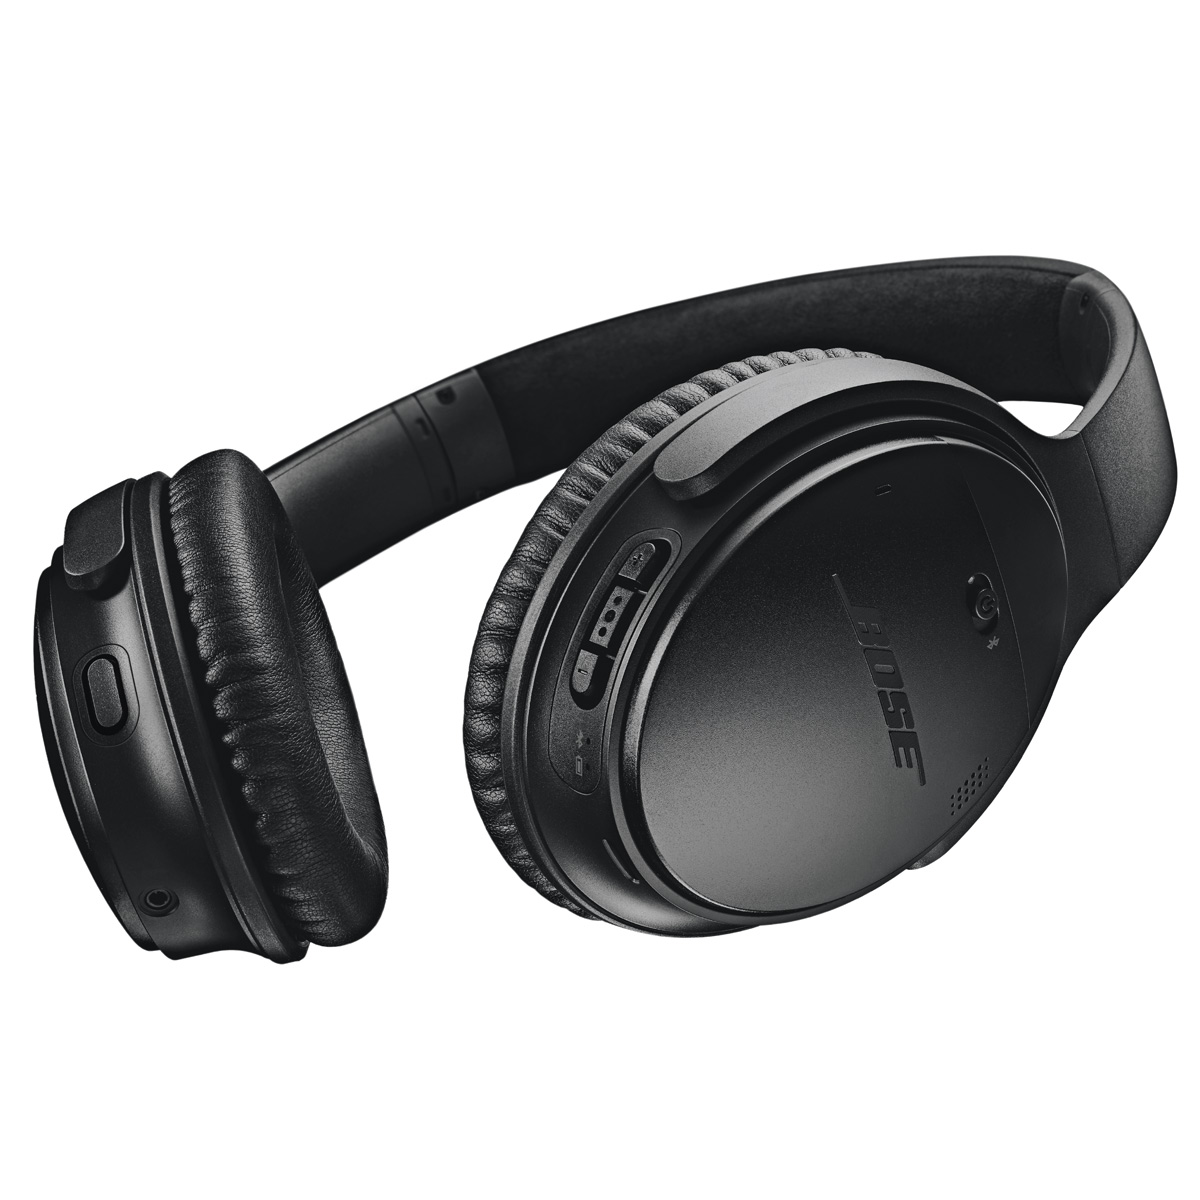 Bose Noise Cancelling Bose Quietcomfort 35 Wireless Noise Cancelling Headphones